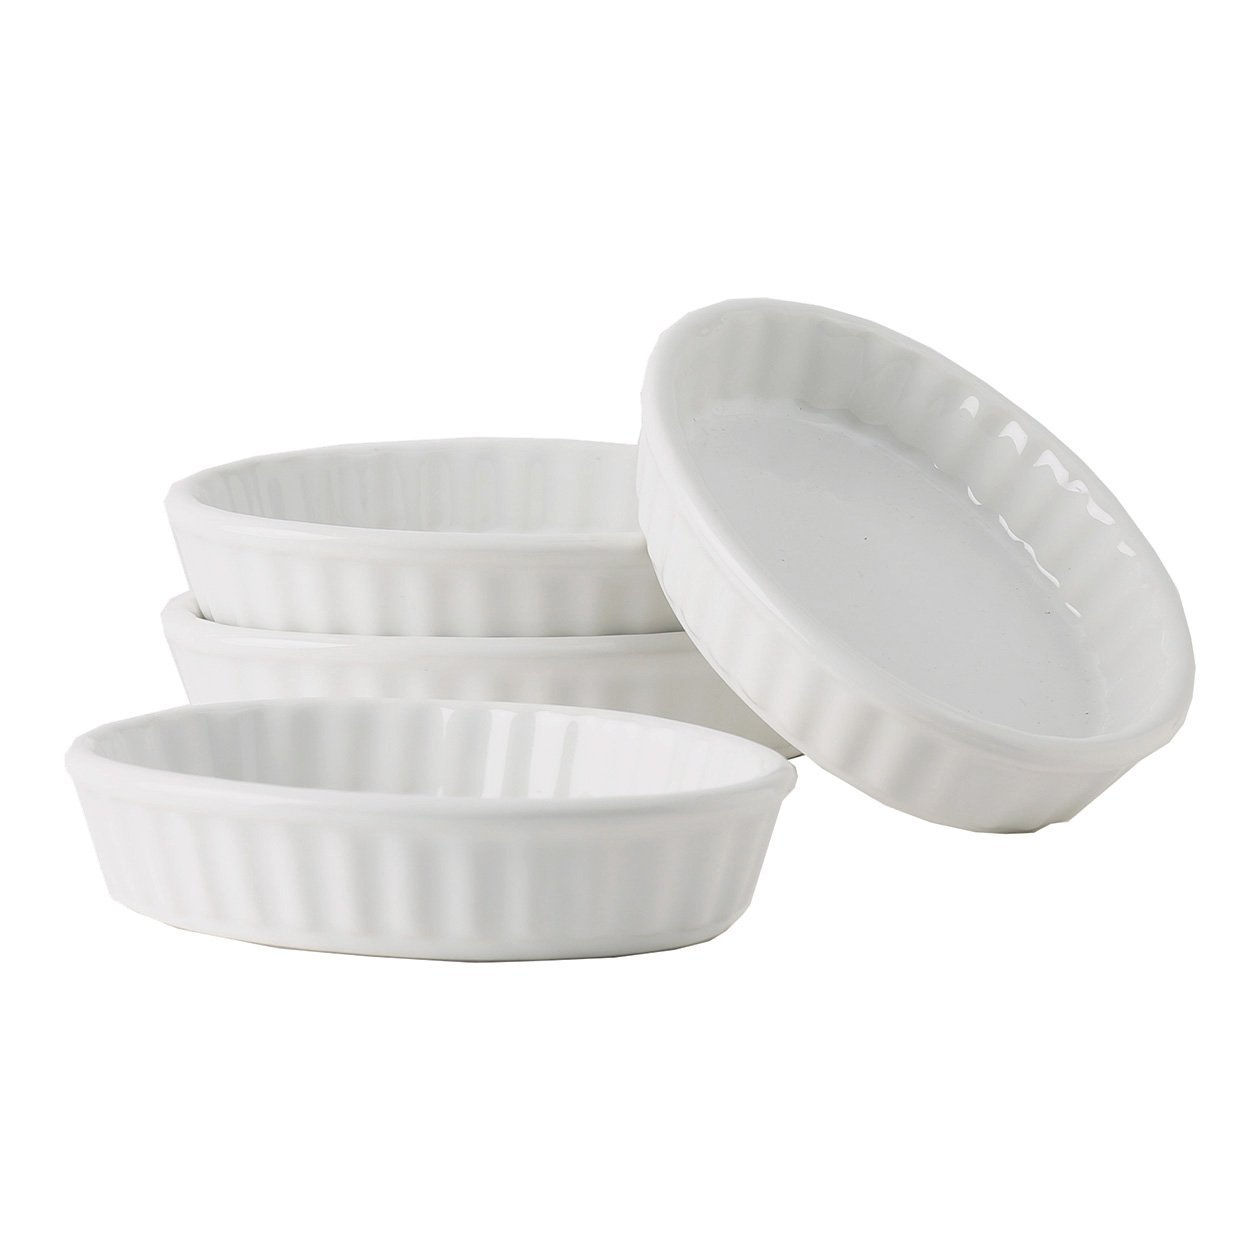 Tuxton Home Duratux Porcelain White Ramekin Fluted 5 oz - Set of 4; Heavy Duty; Chip Resistant; Lead and Cadmium Free; Freezer to Oven Safe up to 500F THBPX0502-4B